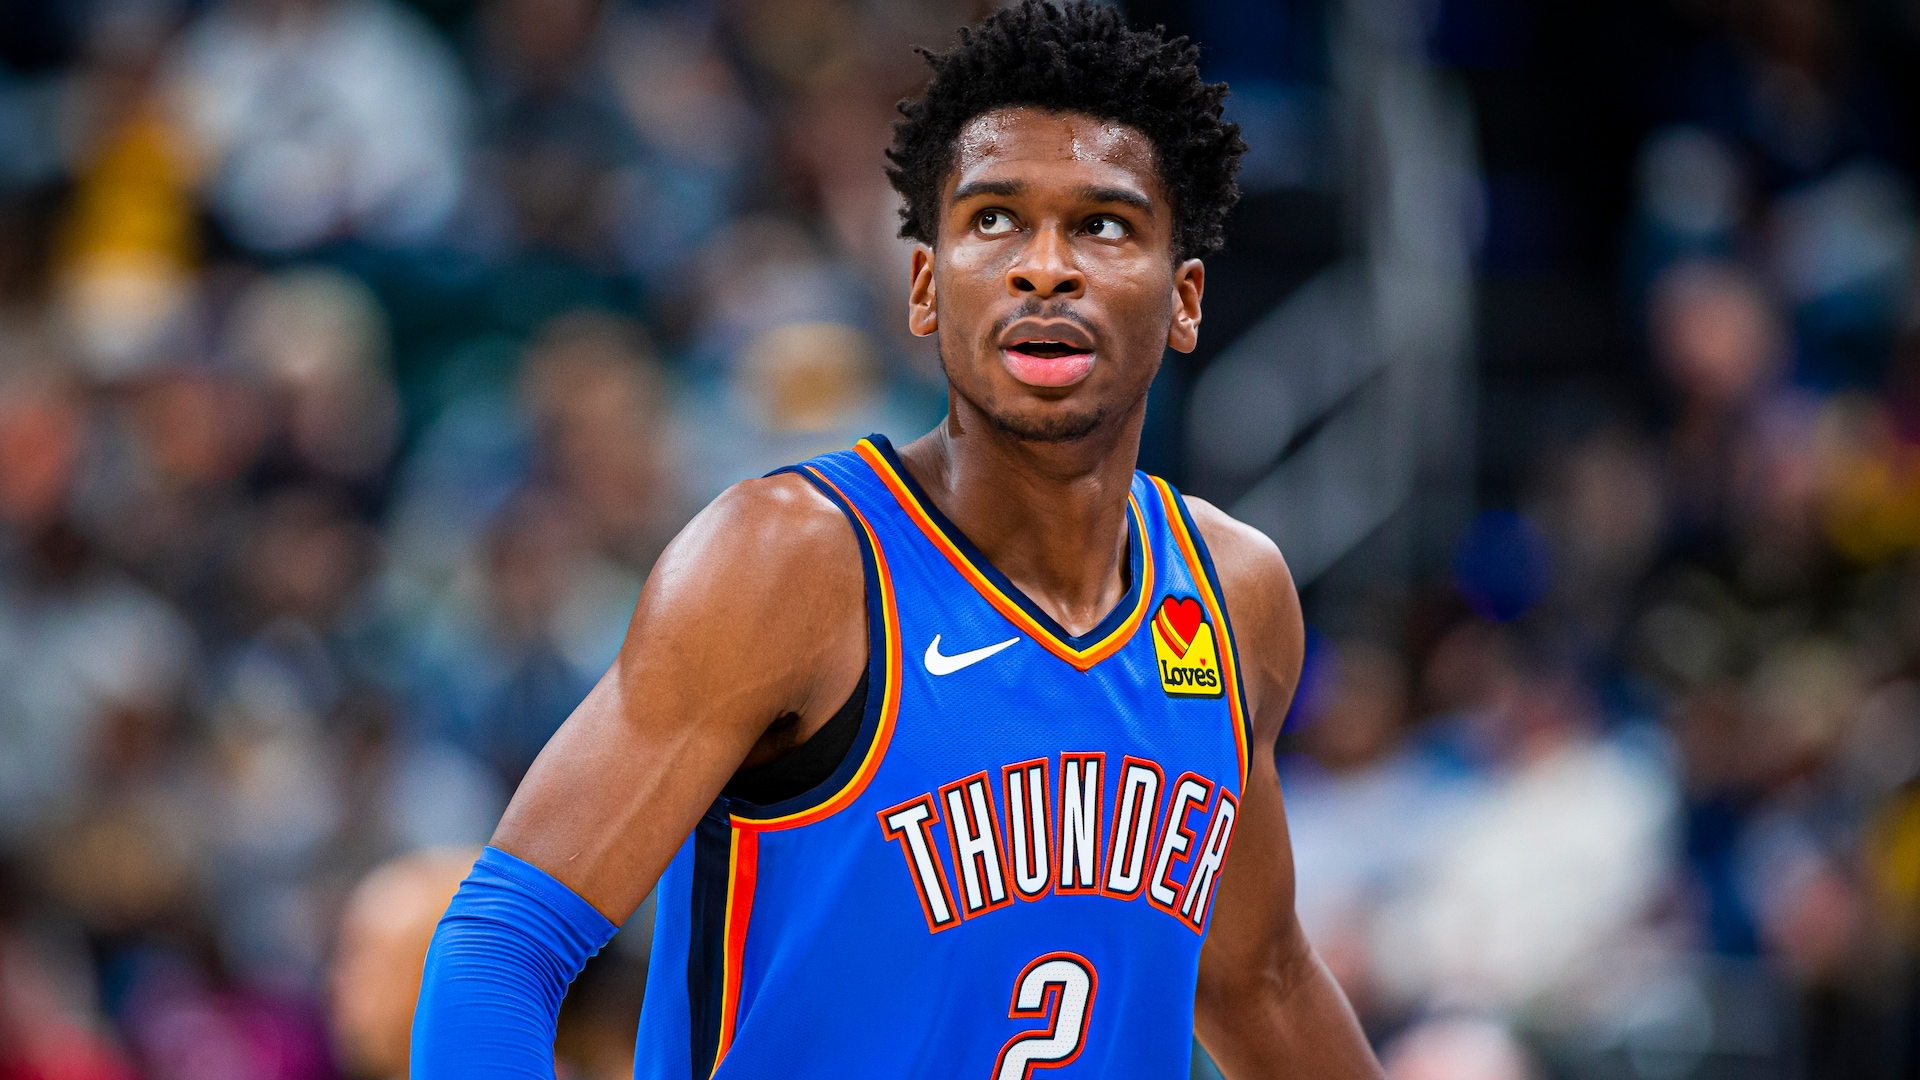 Oklahoma City's Shai Gilgeous-Alexander to replace Detroit's Derrick Rose in 2020 Taco Bell® Skills Challenge